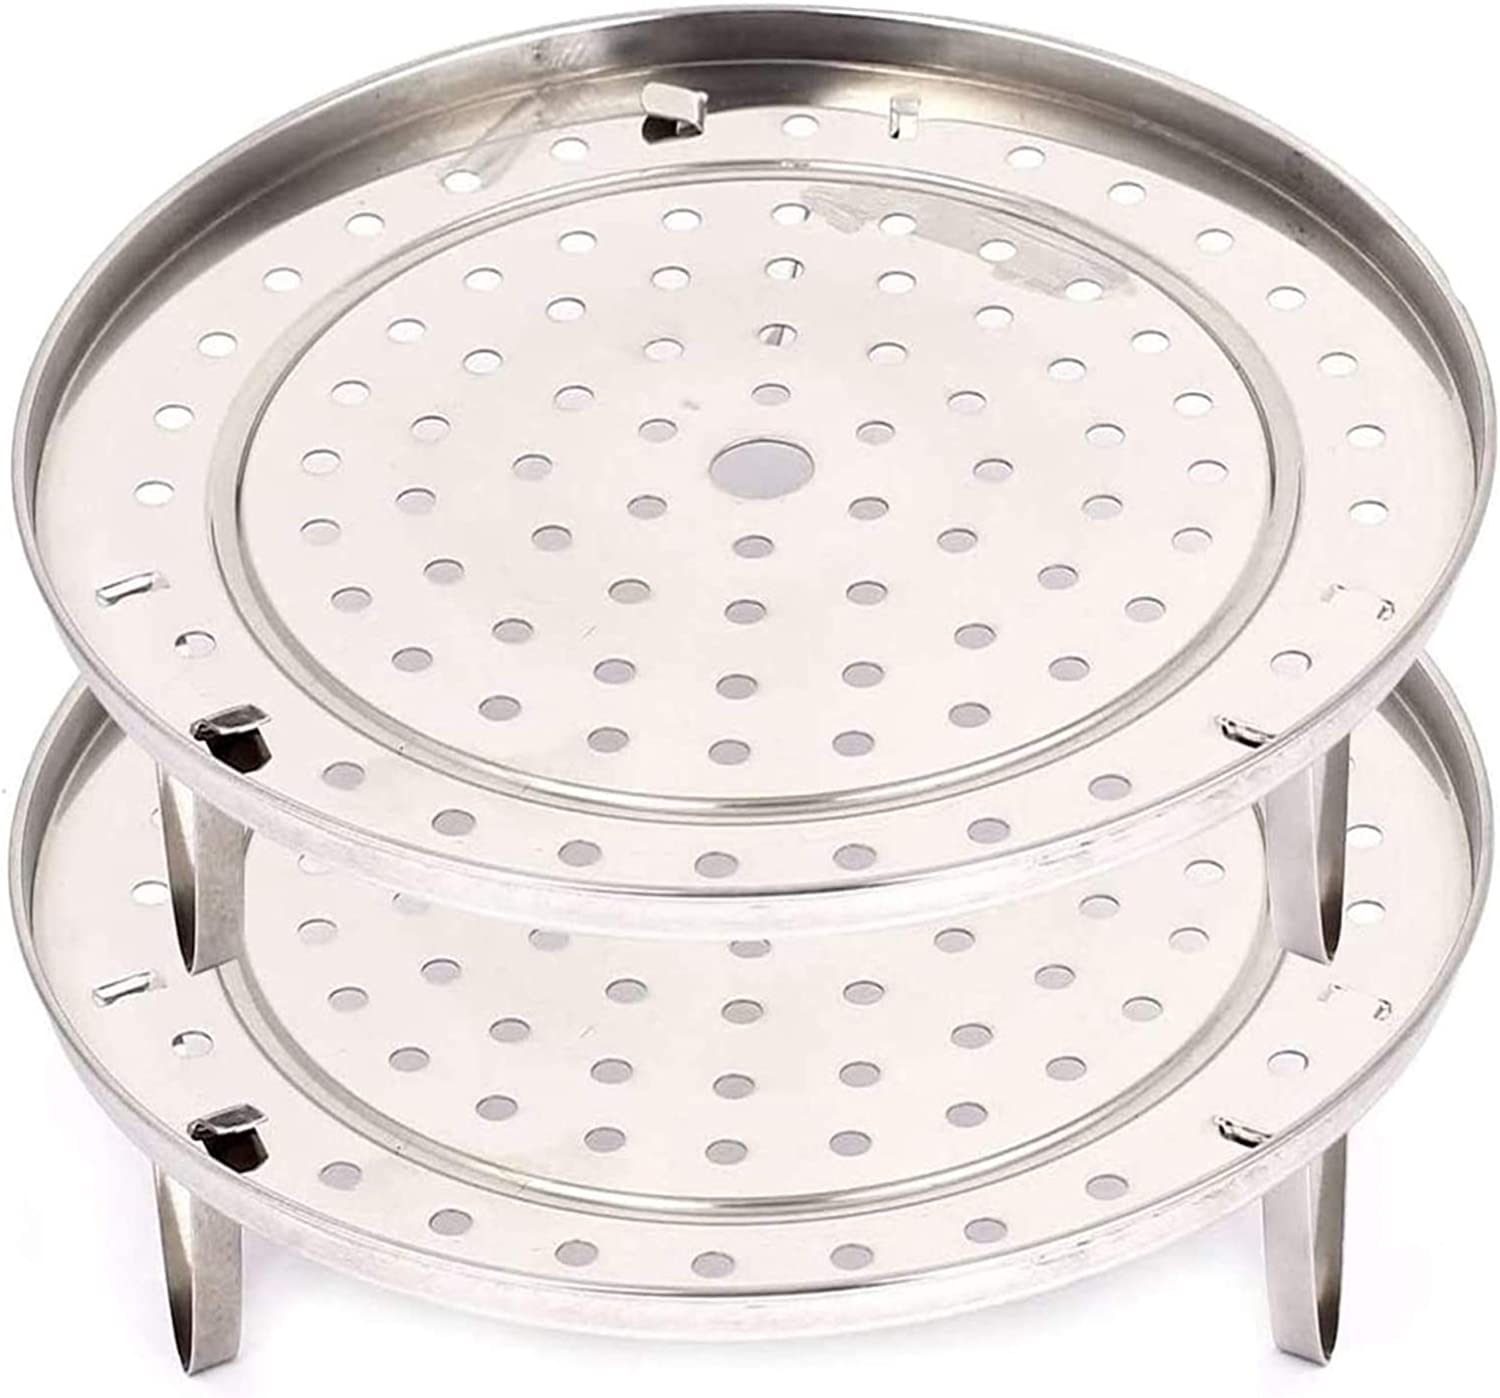 Stainless Steel Steamer Rack 2pcs - Steam Pot Stock Thick Insert Choice Shipping included